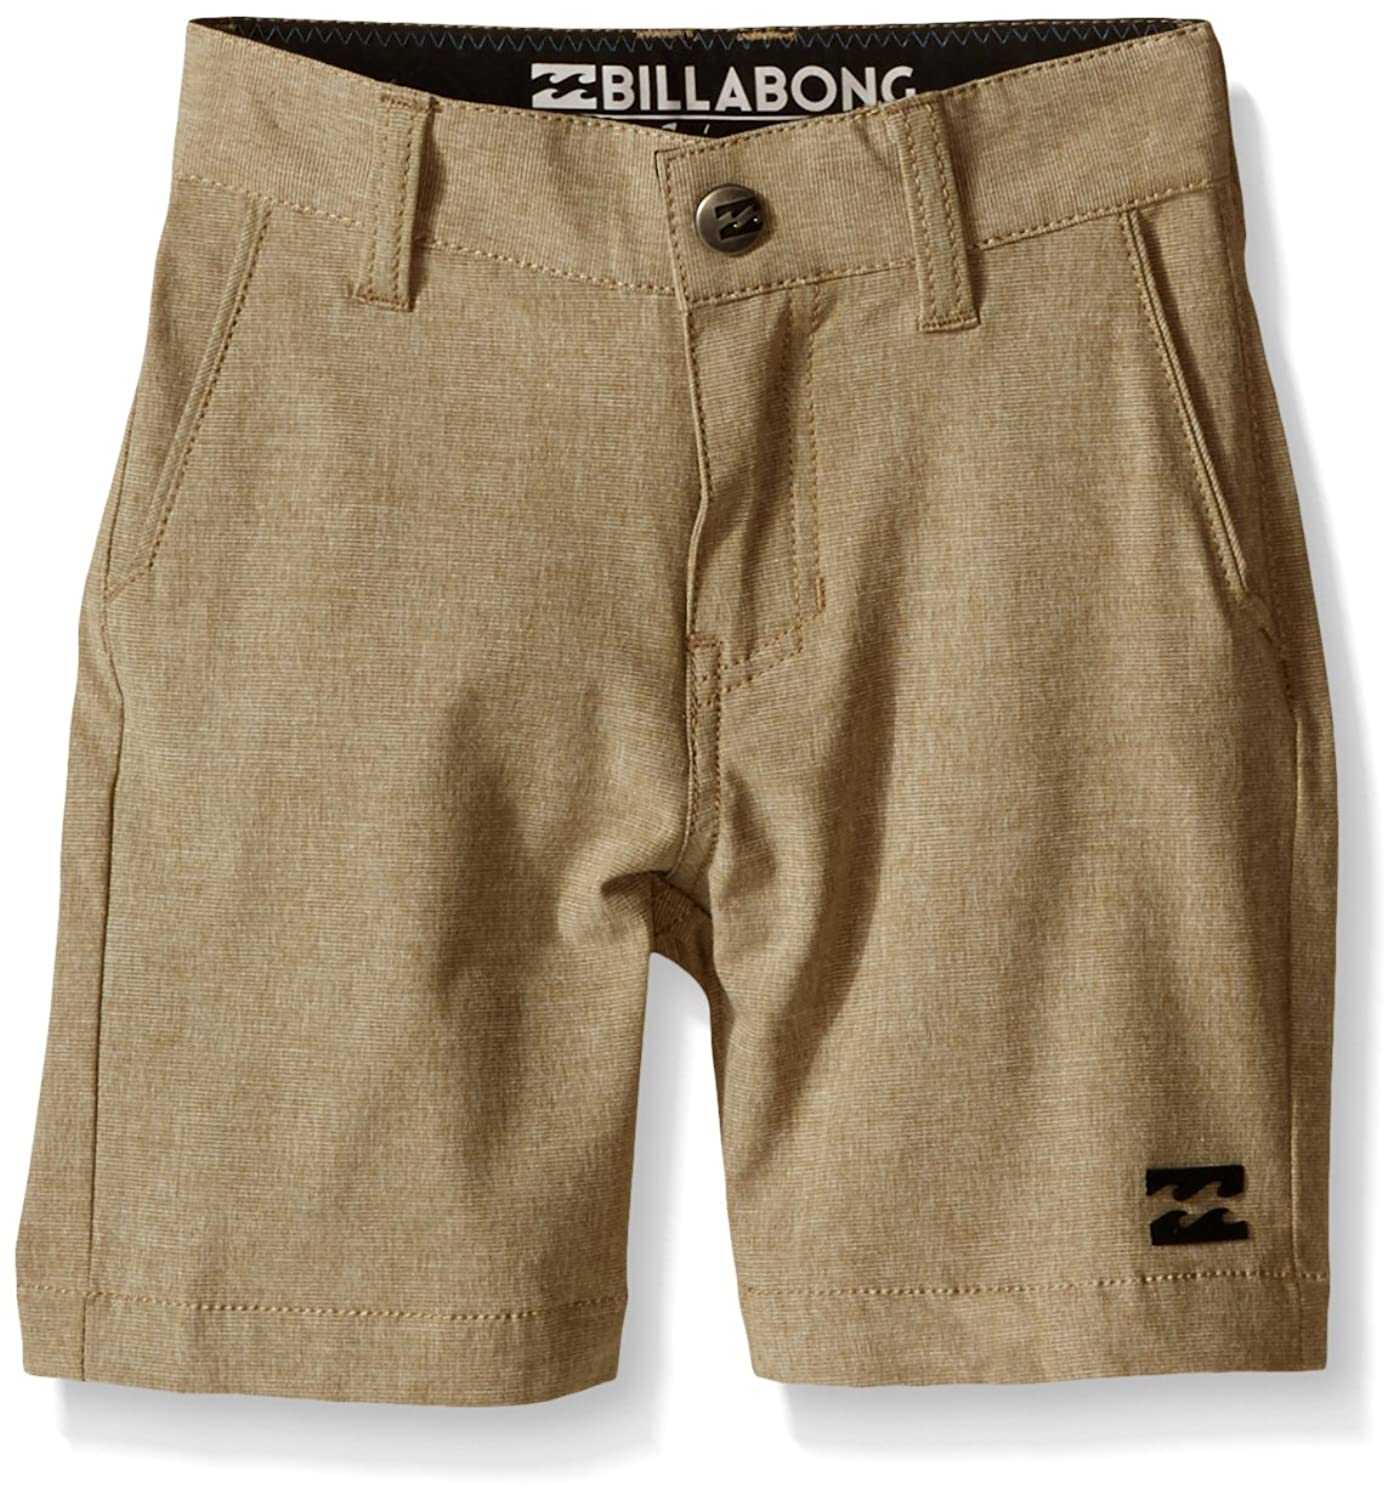 Billabong Boys ' Kids Crossfire X Submersible Shorts US サイズ: S カラー: グレイ